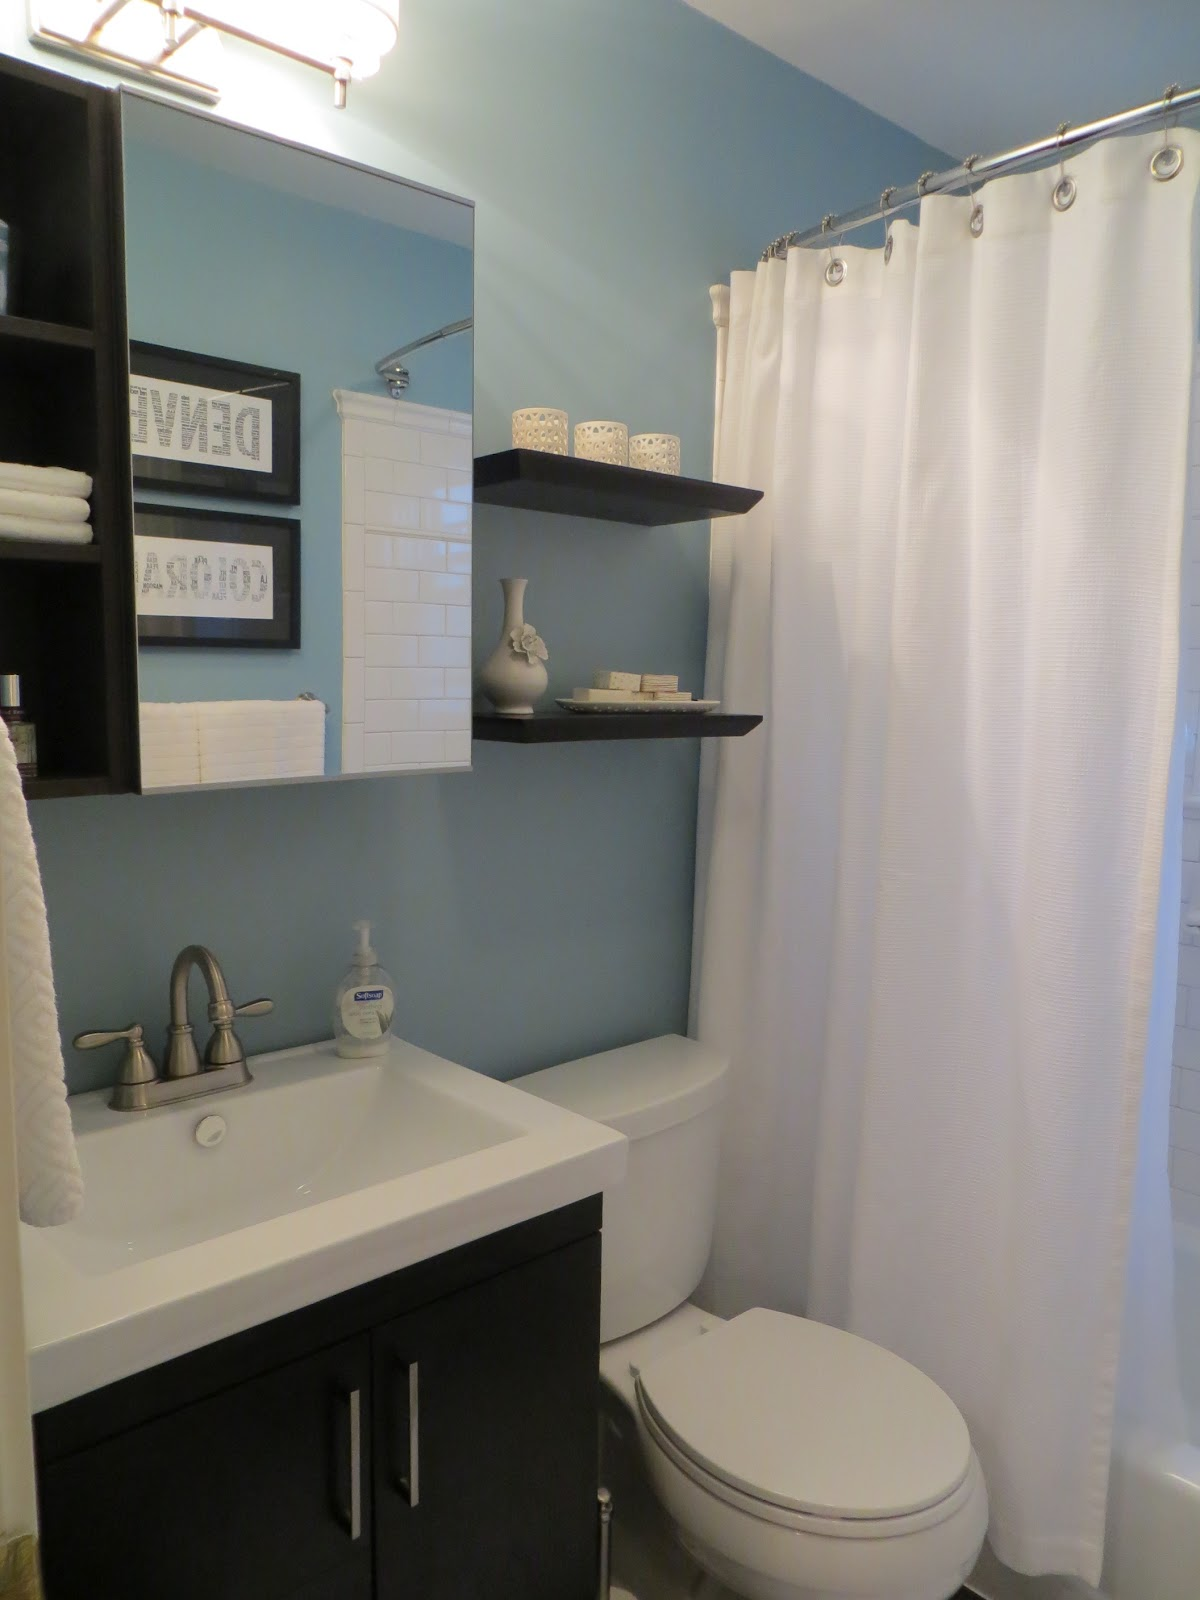 Lowes medicine cabinets with mirror surface on bathroom with blue wall plus white sink and silver faucet plus white curtains